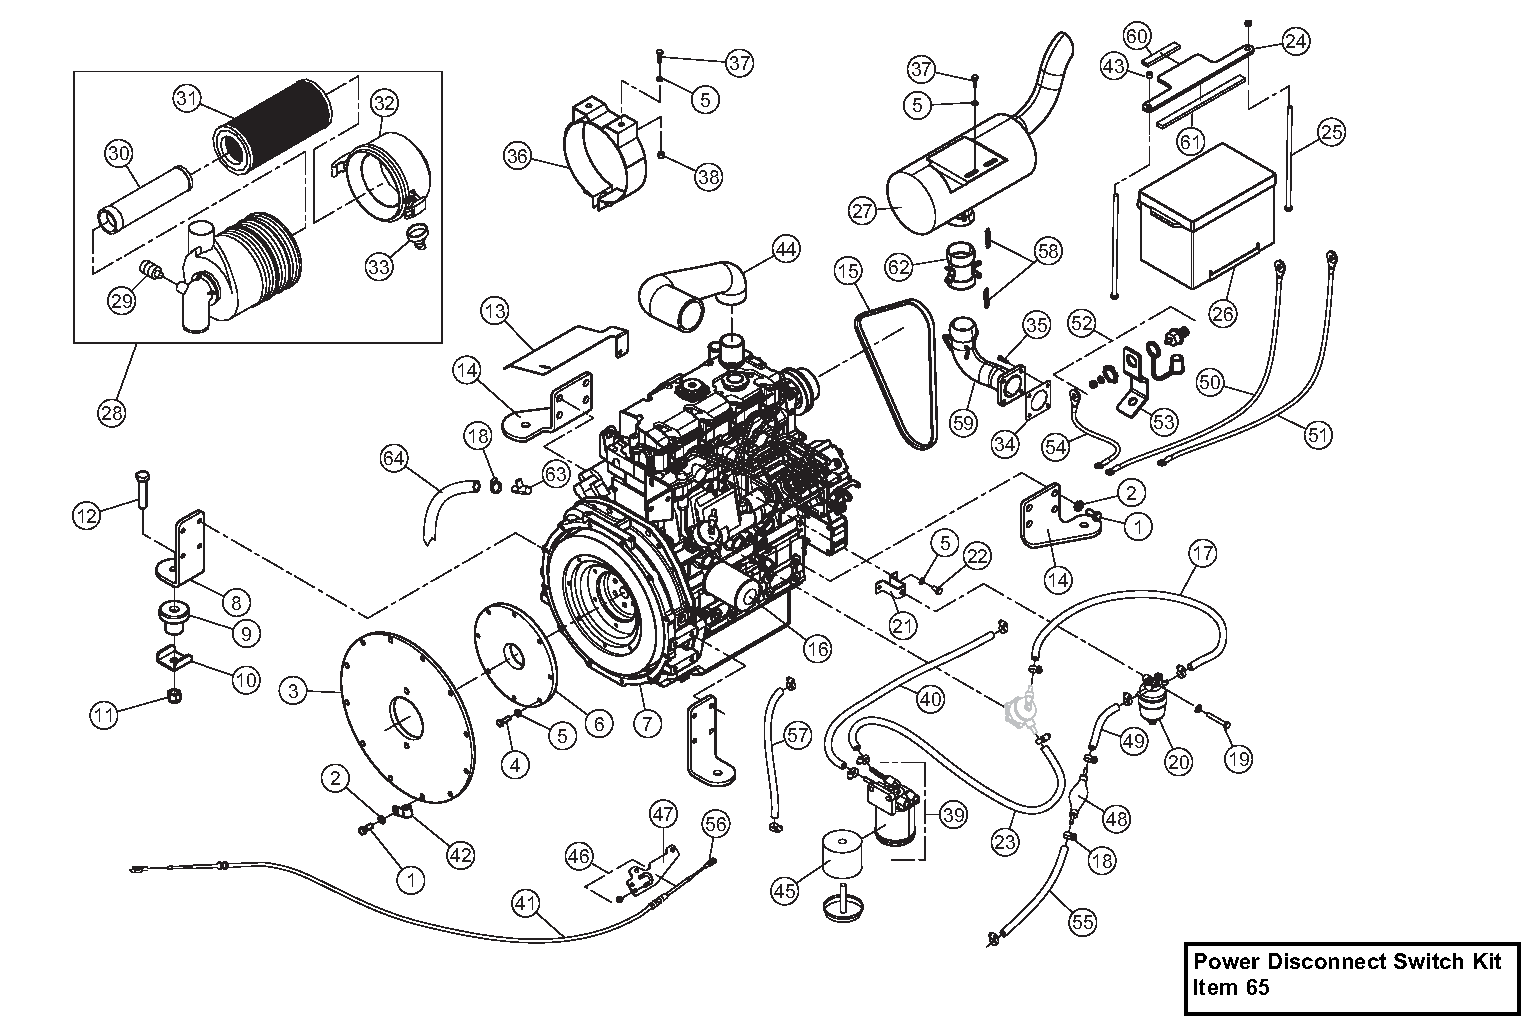 Diagram 18-B Engine Assembly